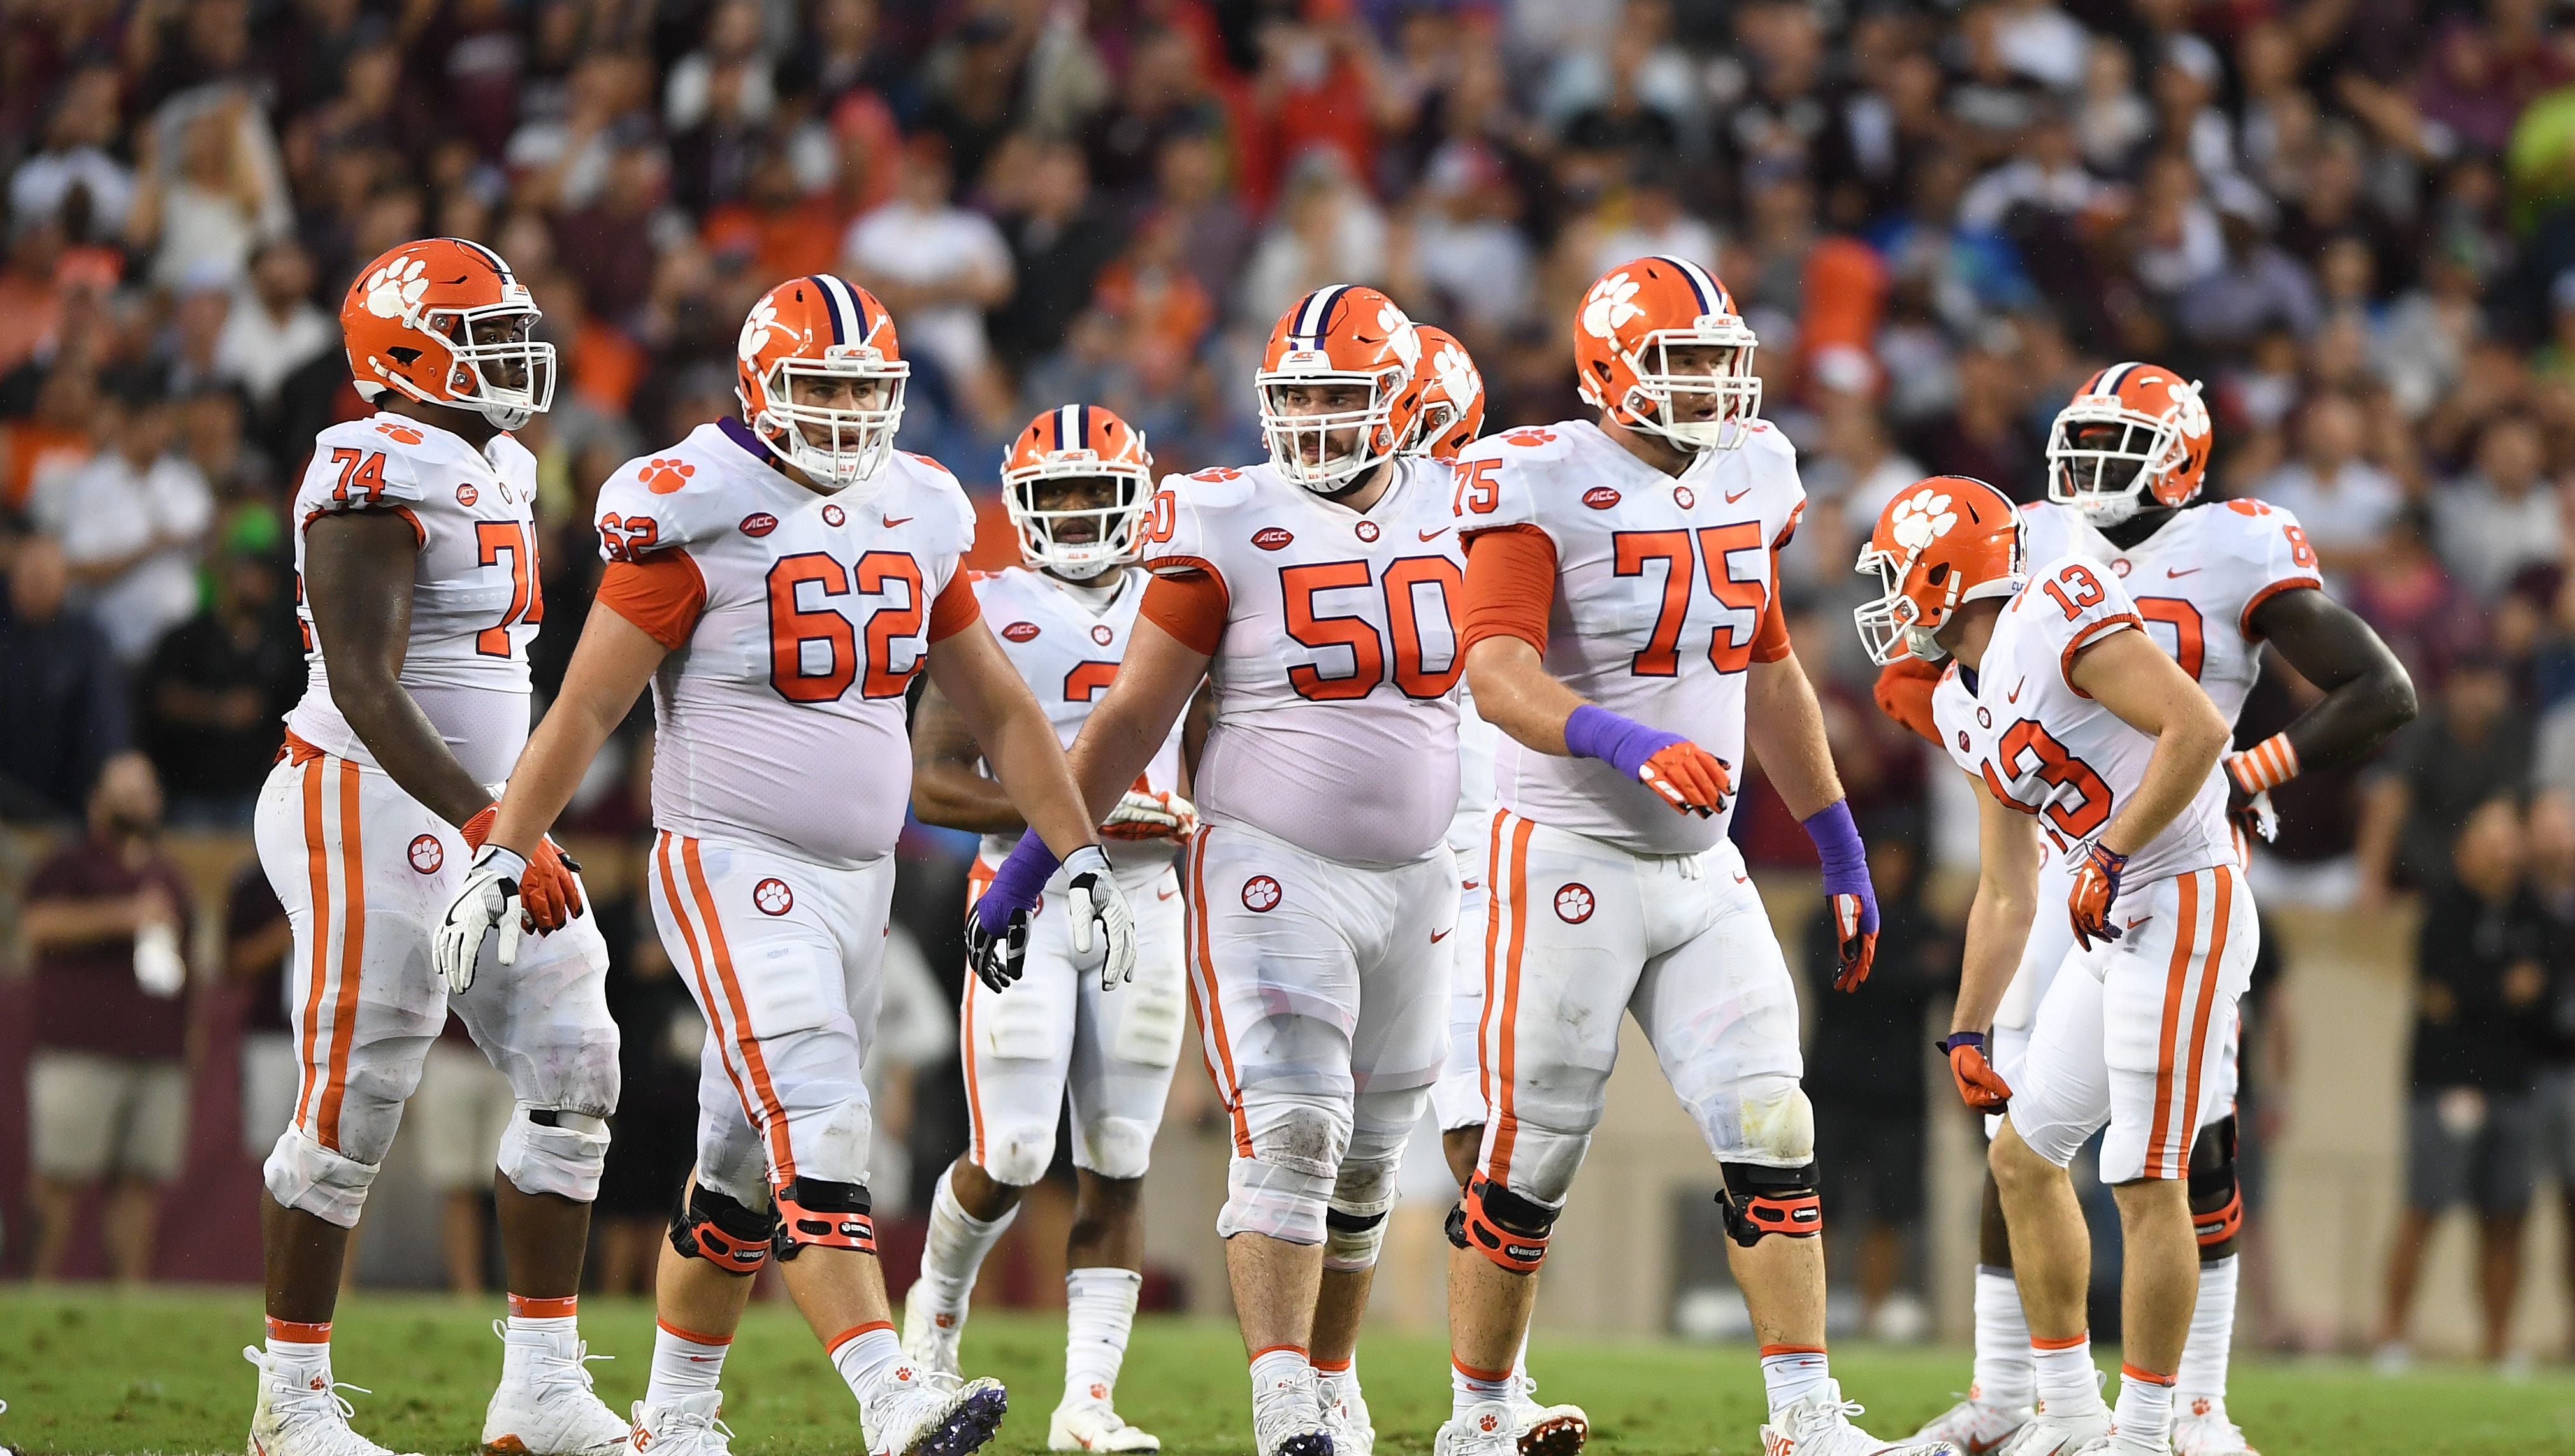 From left, Clemson offensive guard John Simpson (74), offensive lineman Cade Stewart (62), center Justin Falcinelli (50), and offensive lineman Mitch Hyatt (75) during the 2nd quarter at Texas A&M's Kyle Field in College Station, TX Saturday, September 8, 2018.